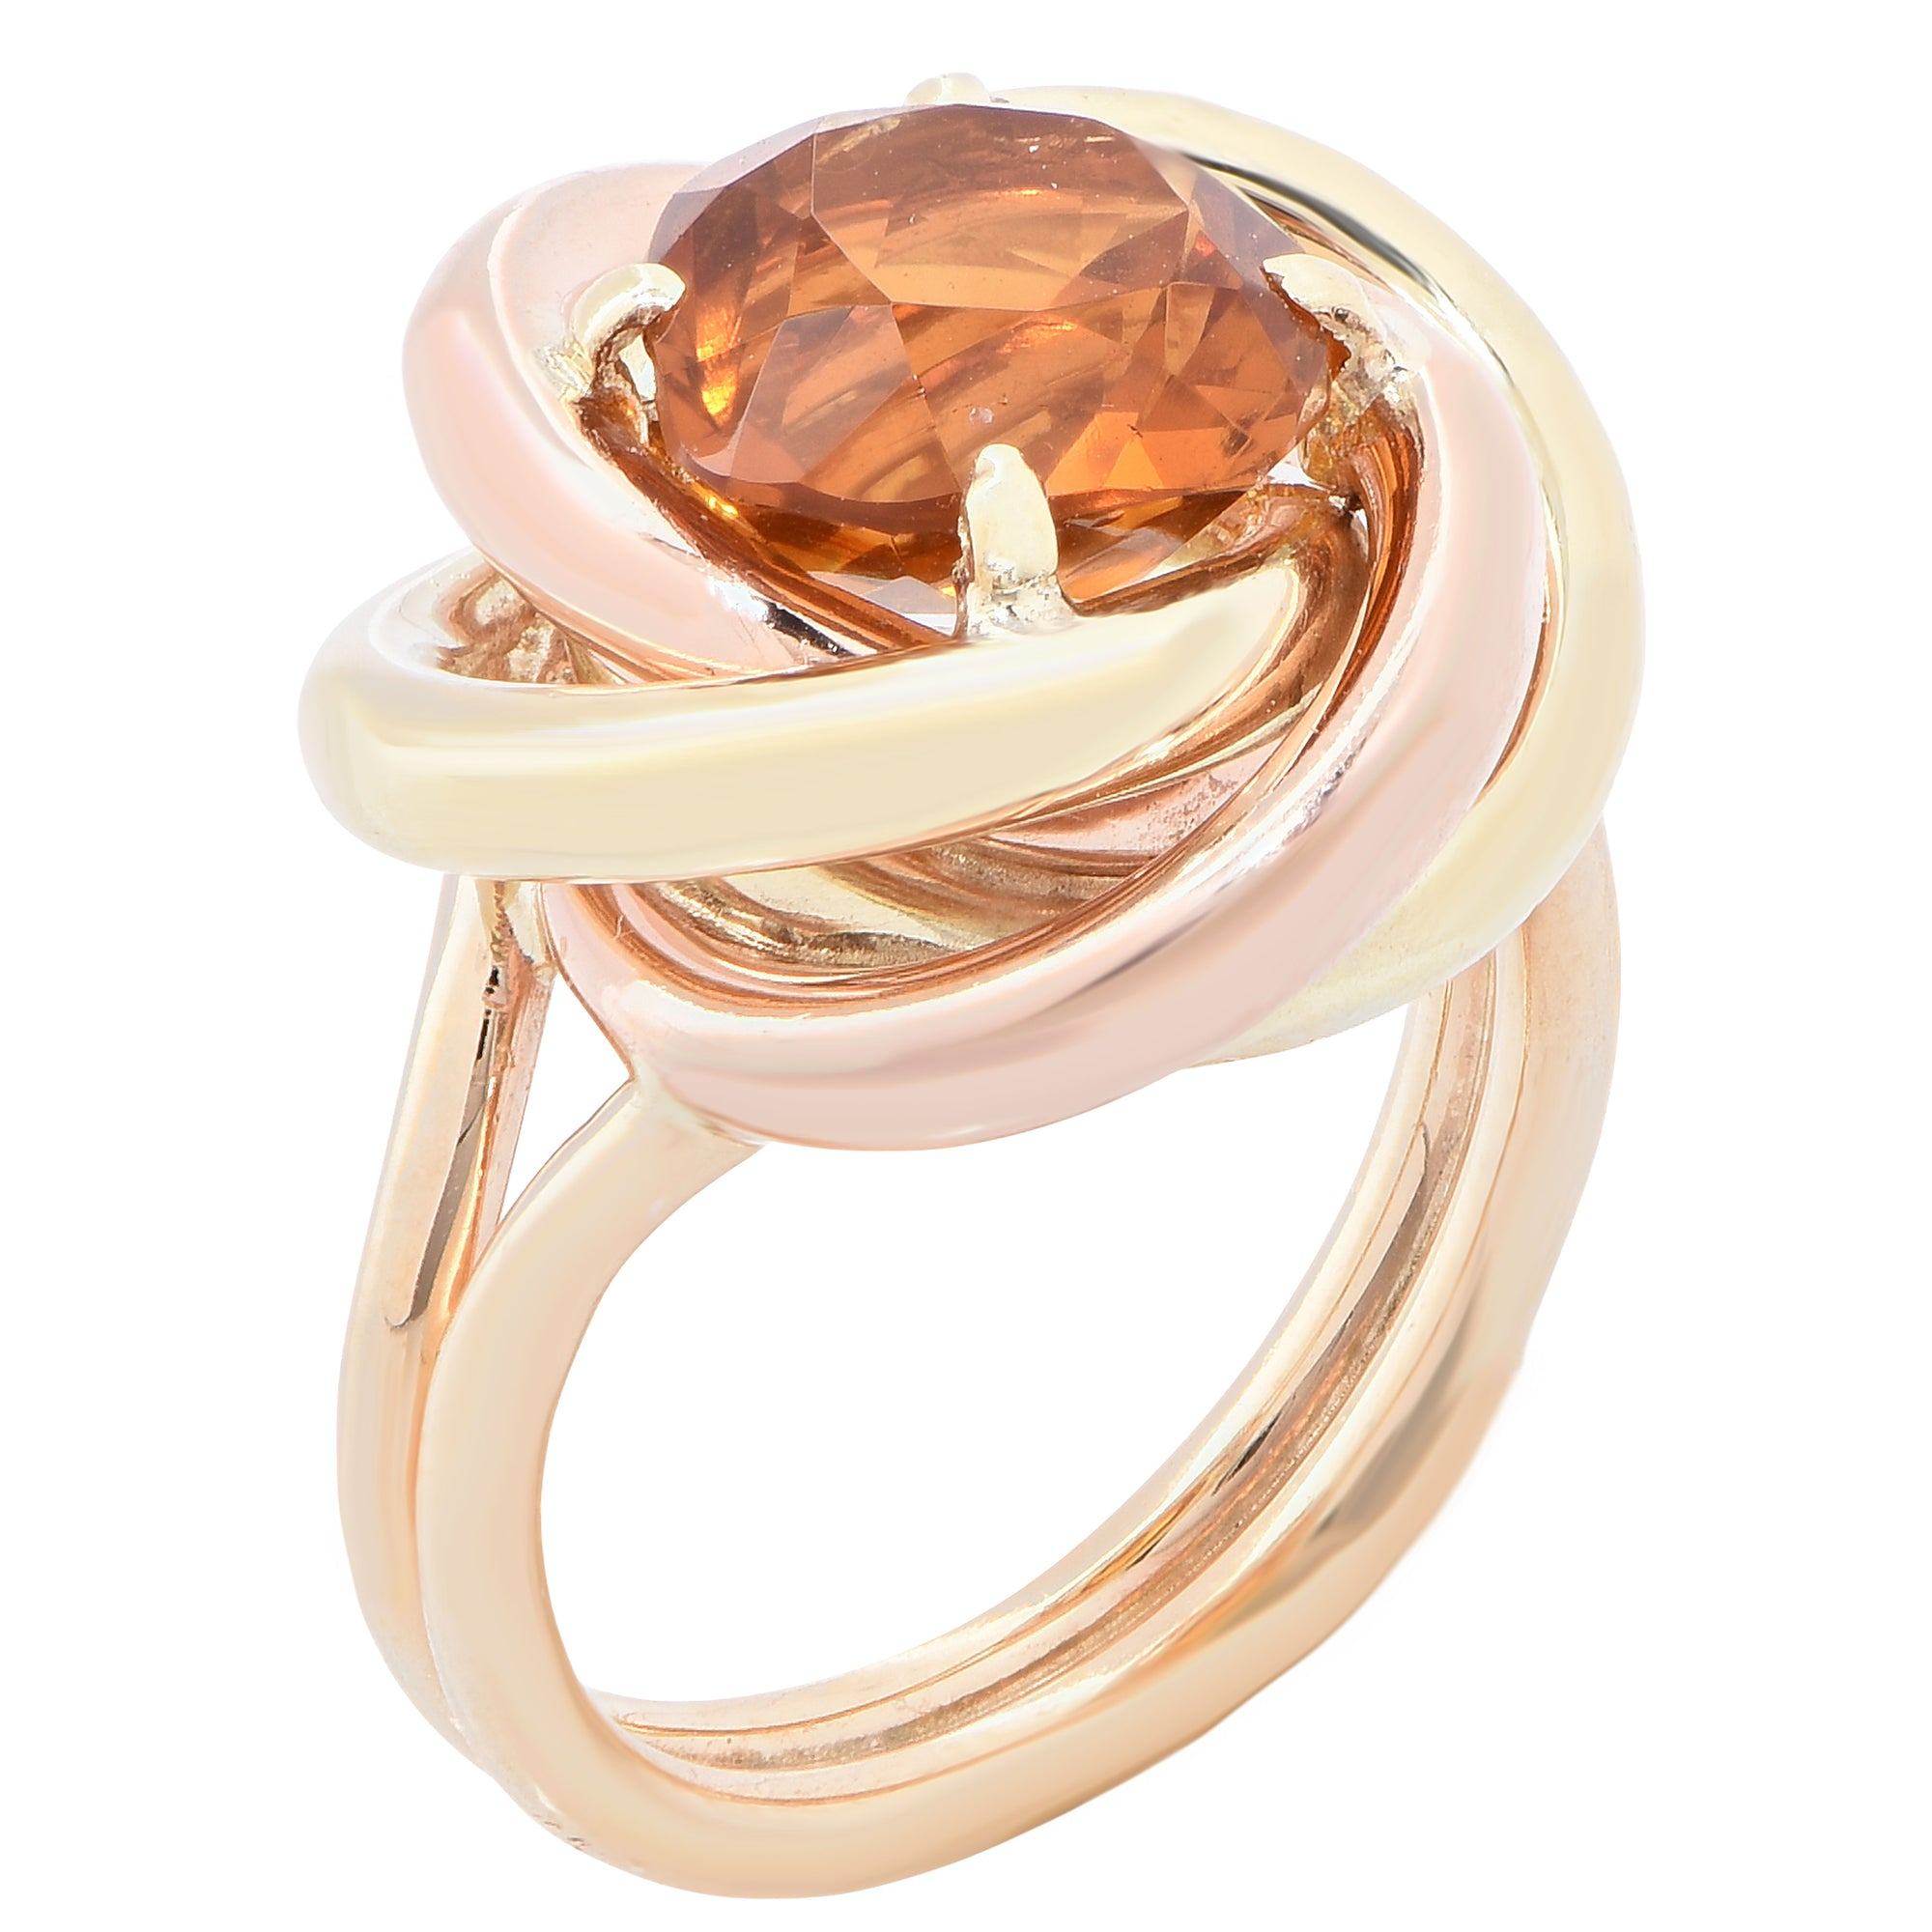 1940s Cartier Retro 2.75 Carat Citrine Love Knot Gold Ring